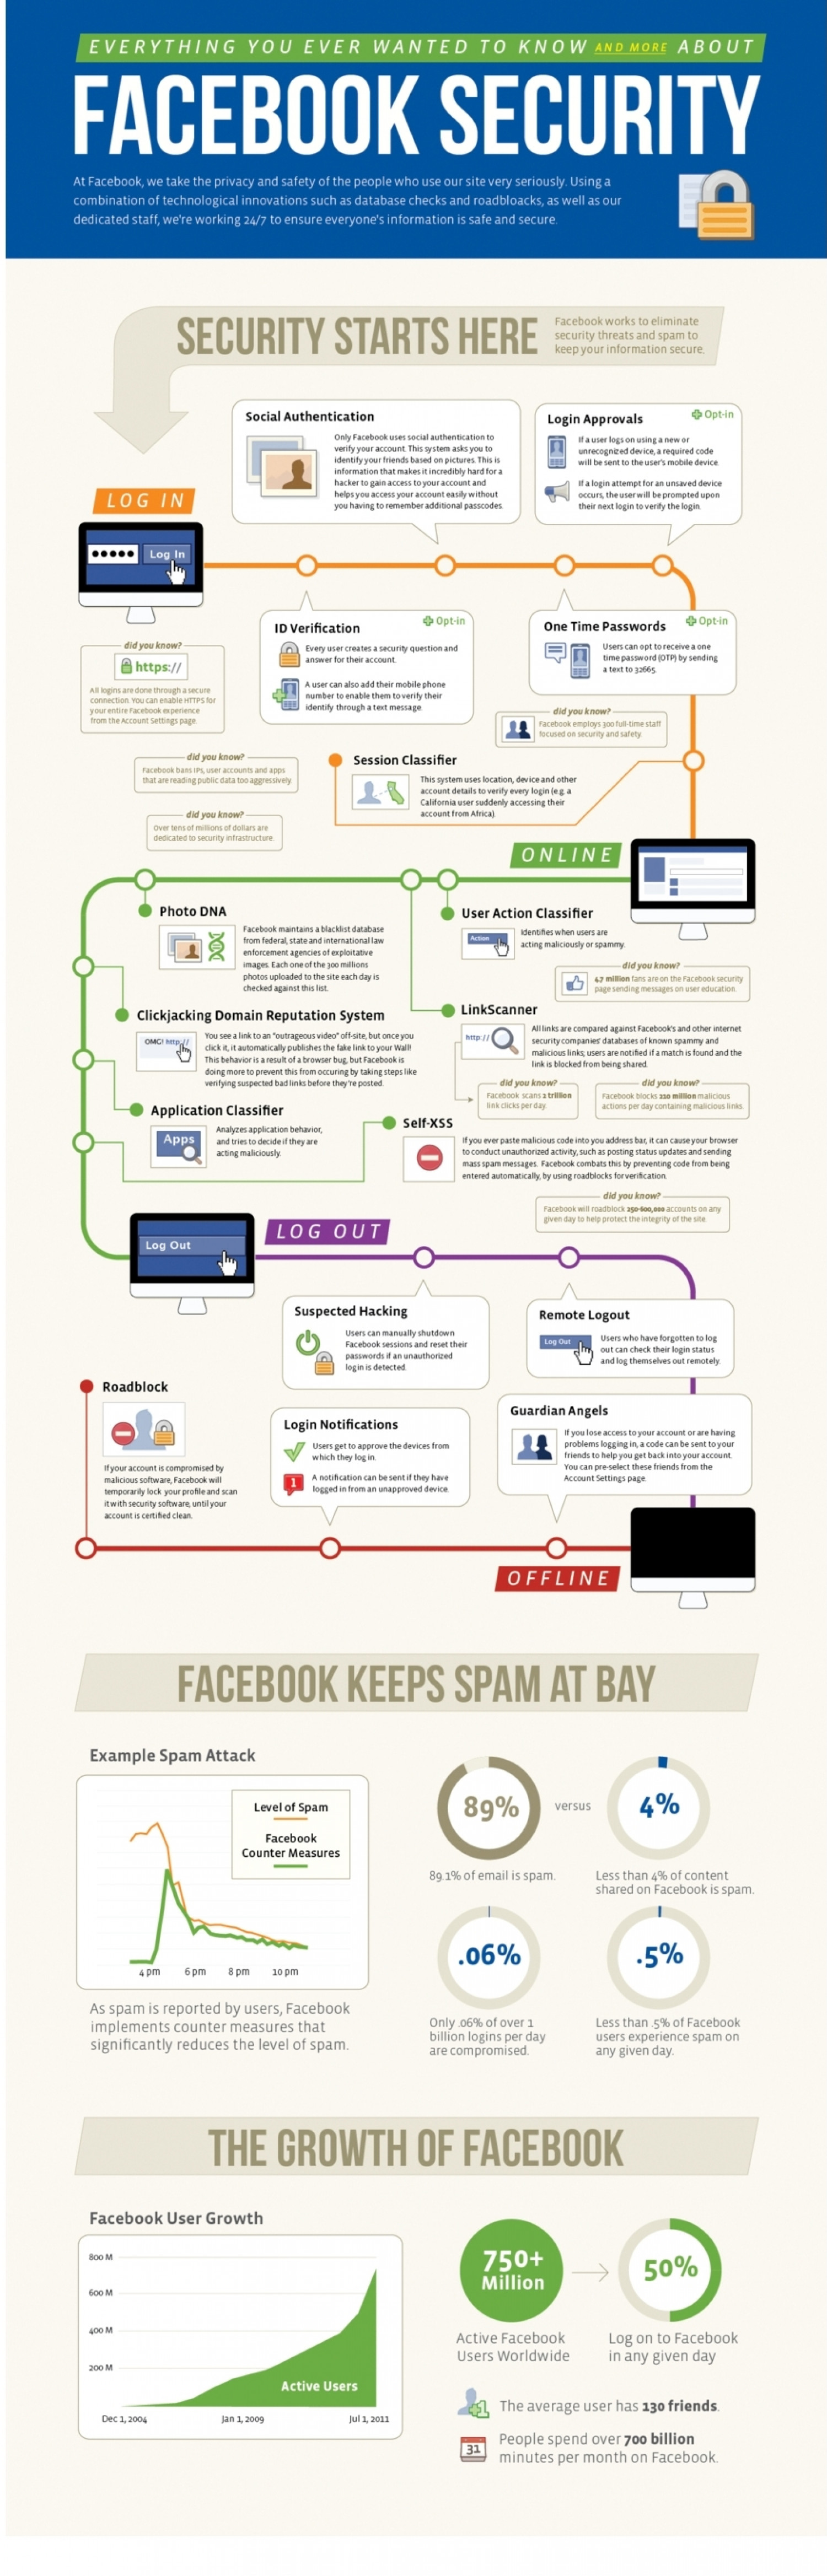 Facebook Security Features Explained  Infographic